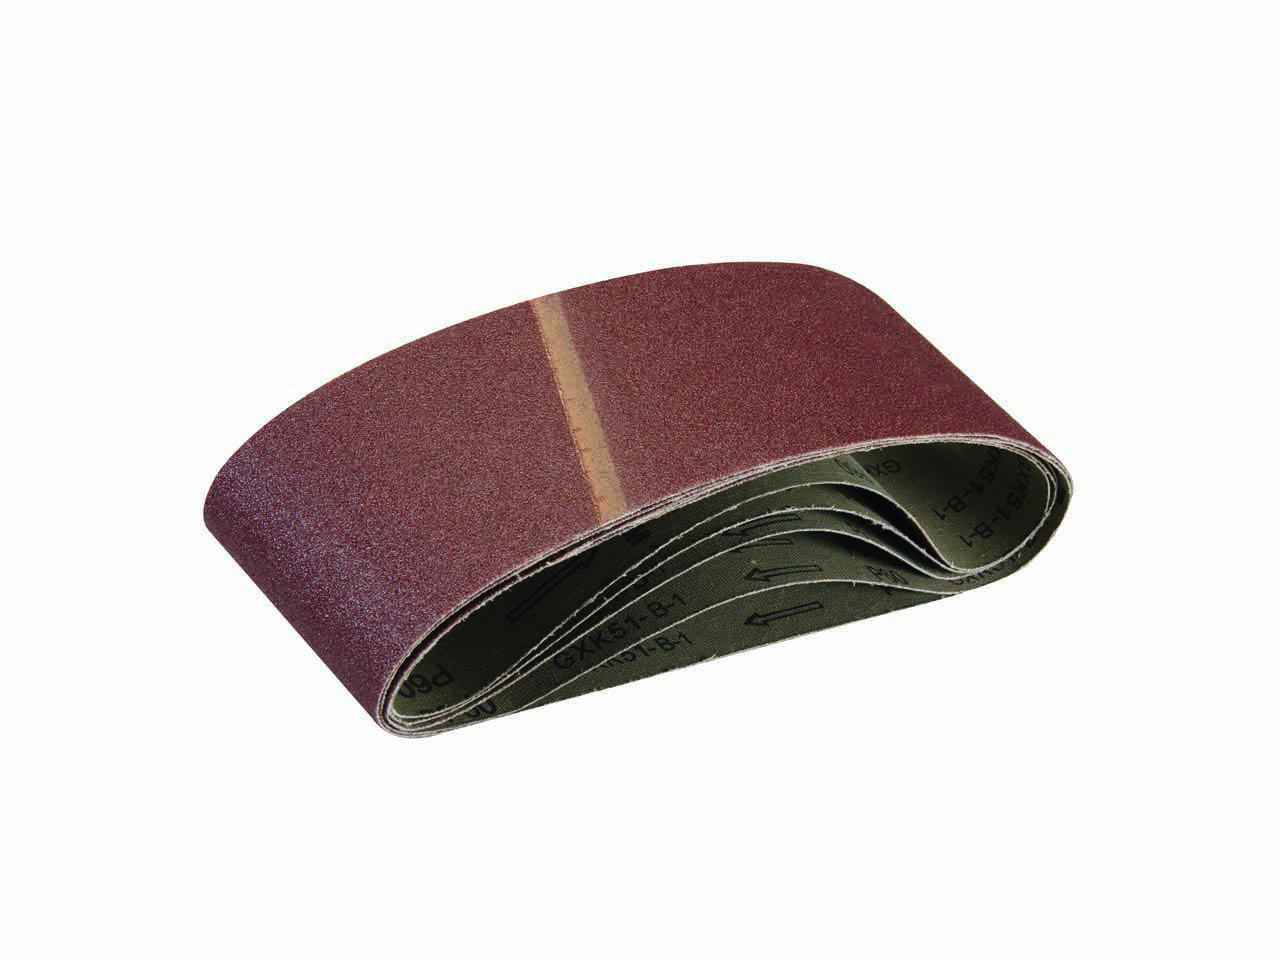 for Sanding Wood Overlap Joint with Extra top-Skive for Reduced Chatter Sanding Belts 100mm x 610mm 5pk 60 Grit Aluminium Oxide Abrasive Grain Resin Bonded to X-Weight Backing Cloth Paint.